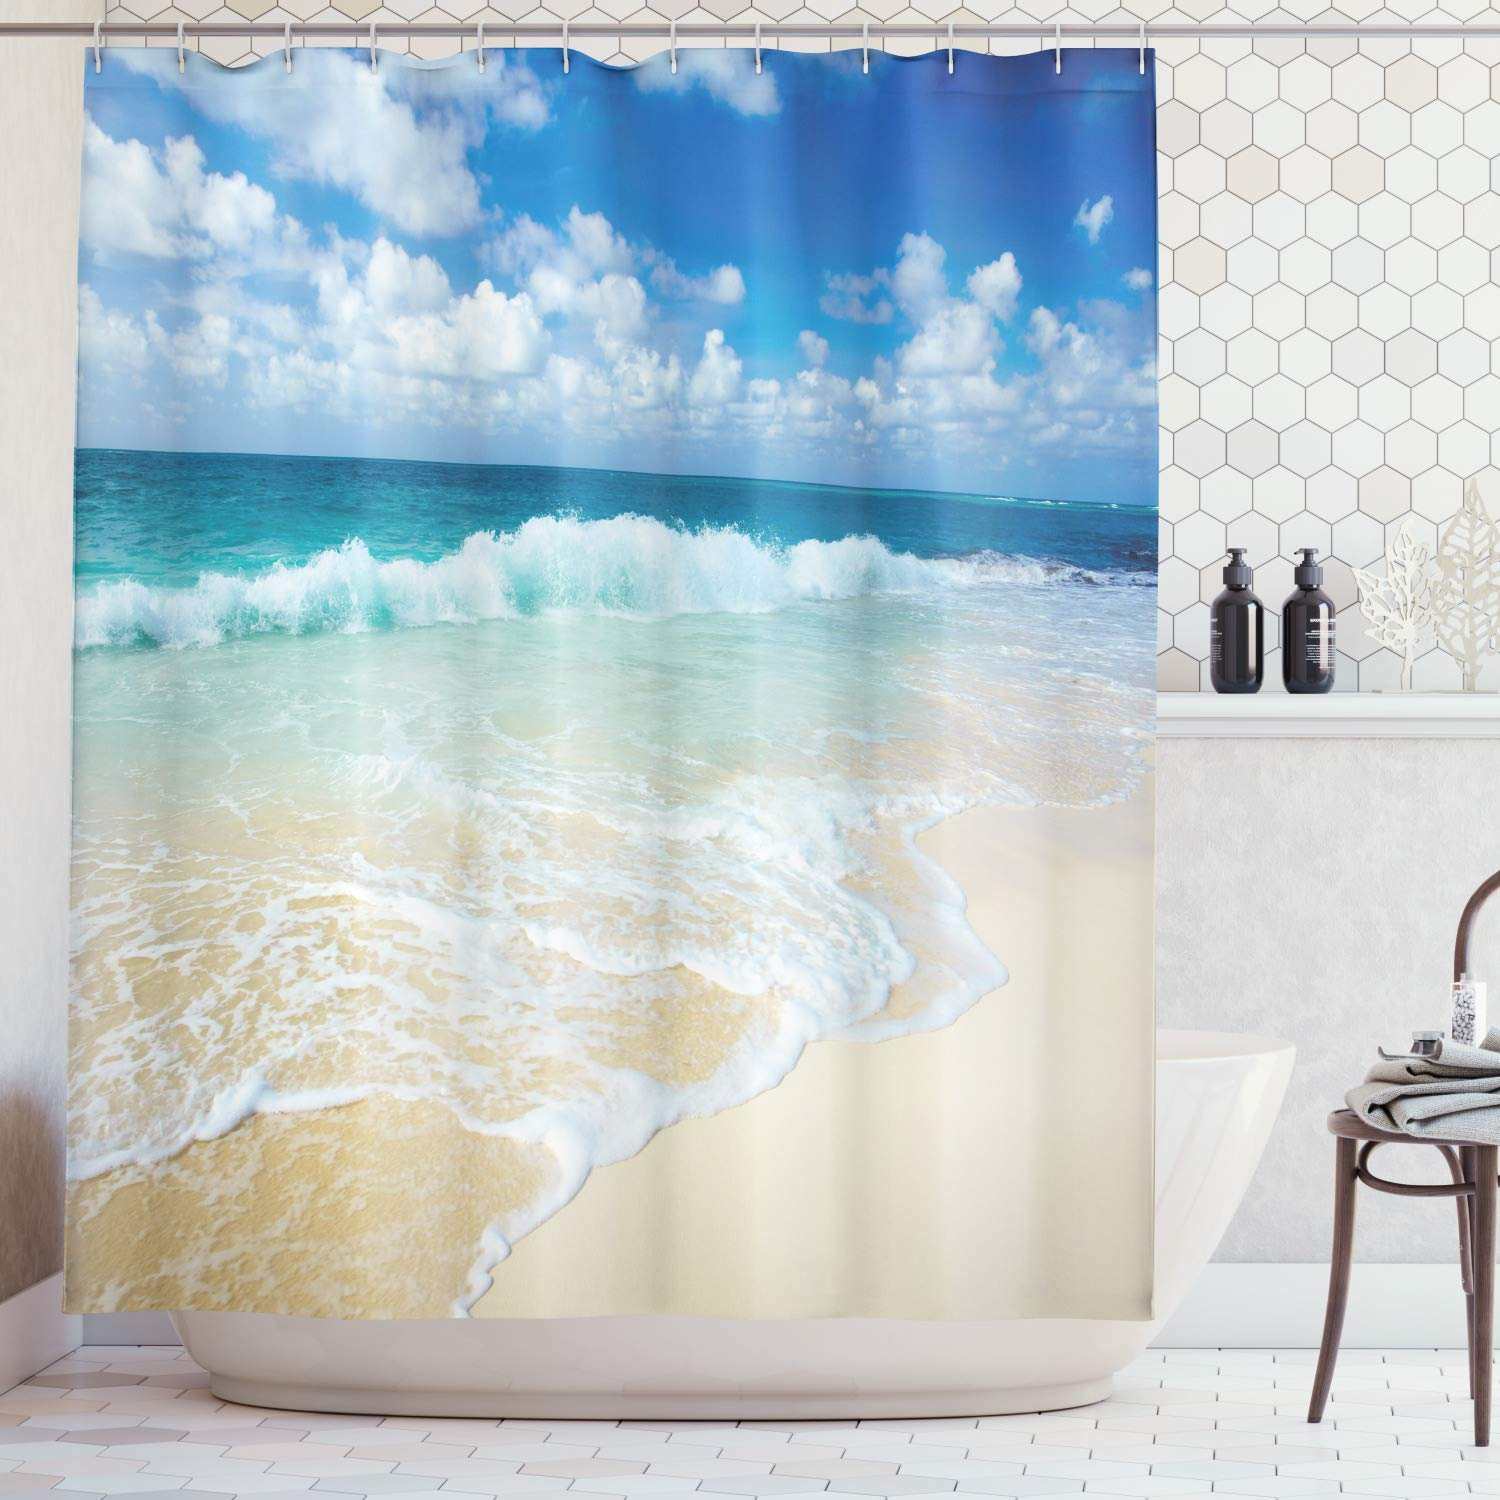 Lunarable Wave Shower Curtain, Beach with Foamy Waves on Empty Sea Shore Holiday Theme Serene Coastal, Fabric Bathroom Decor Set with Hooks, 105 inches Extra Wide, Blue White Sand Brown